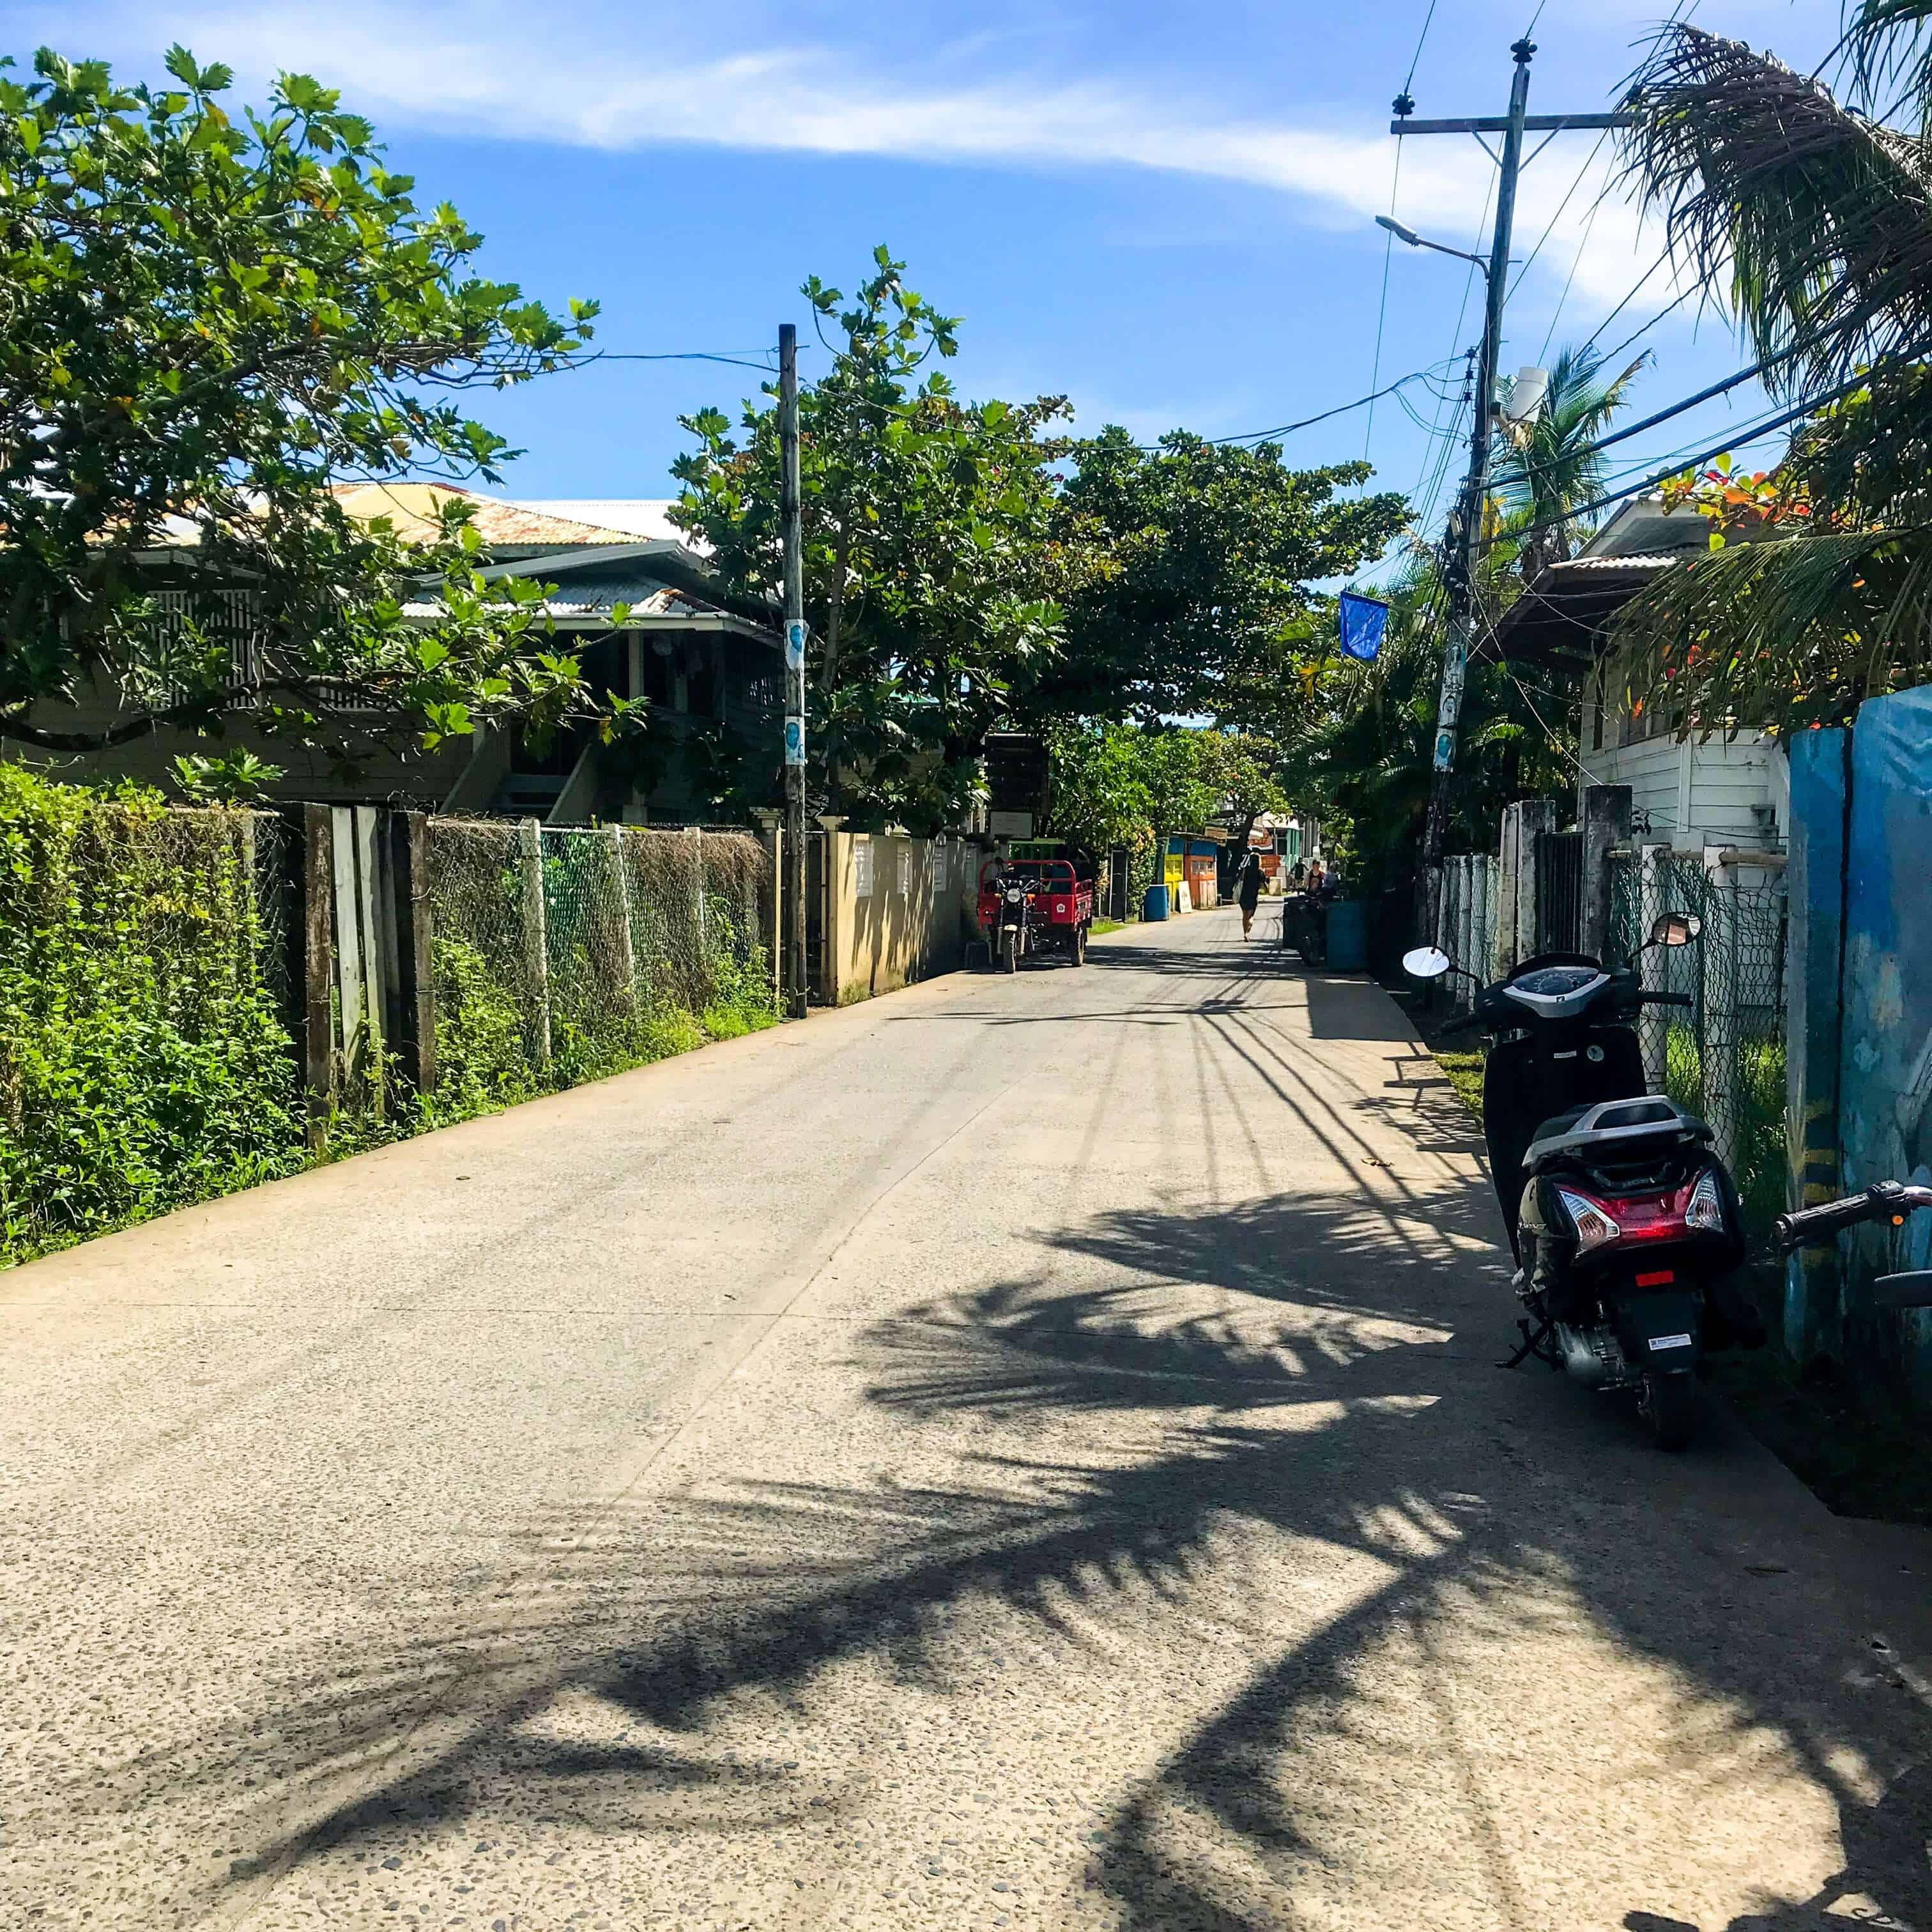 Walking down the street in Utila